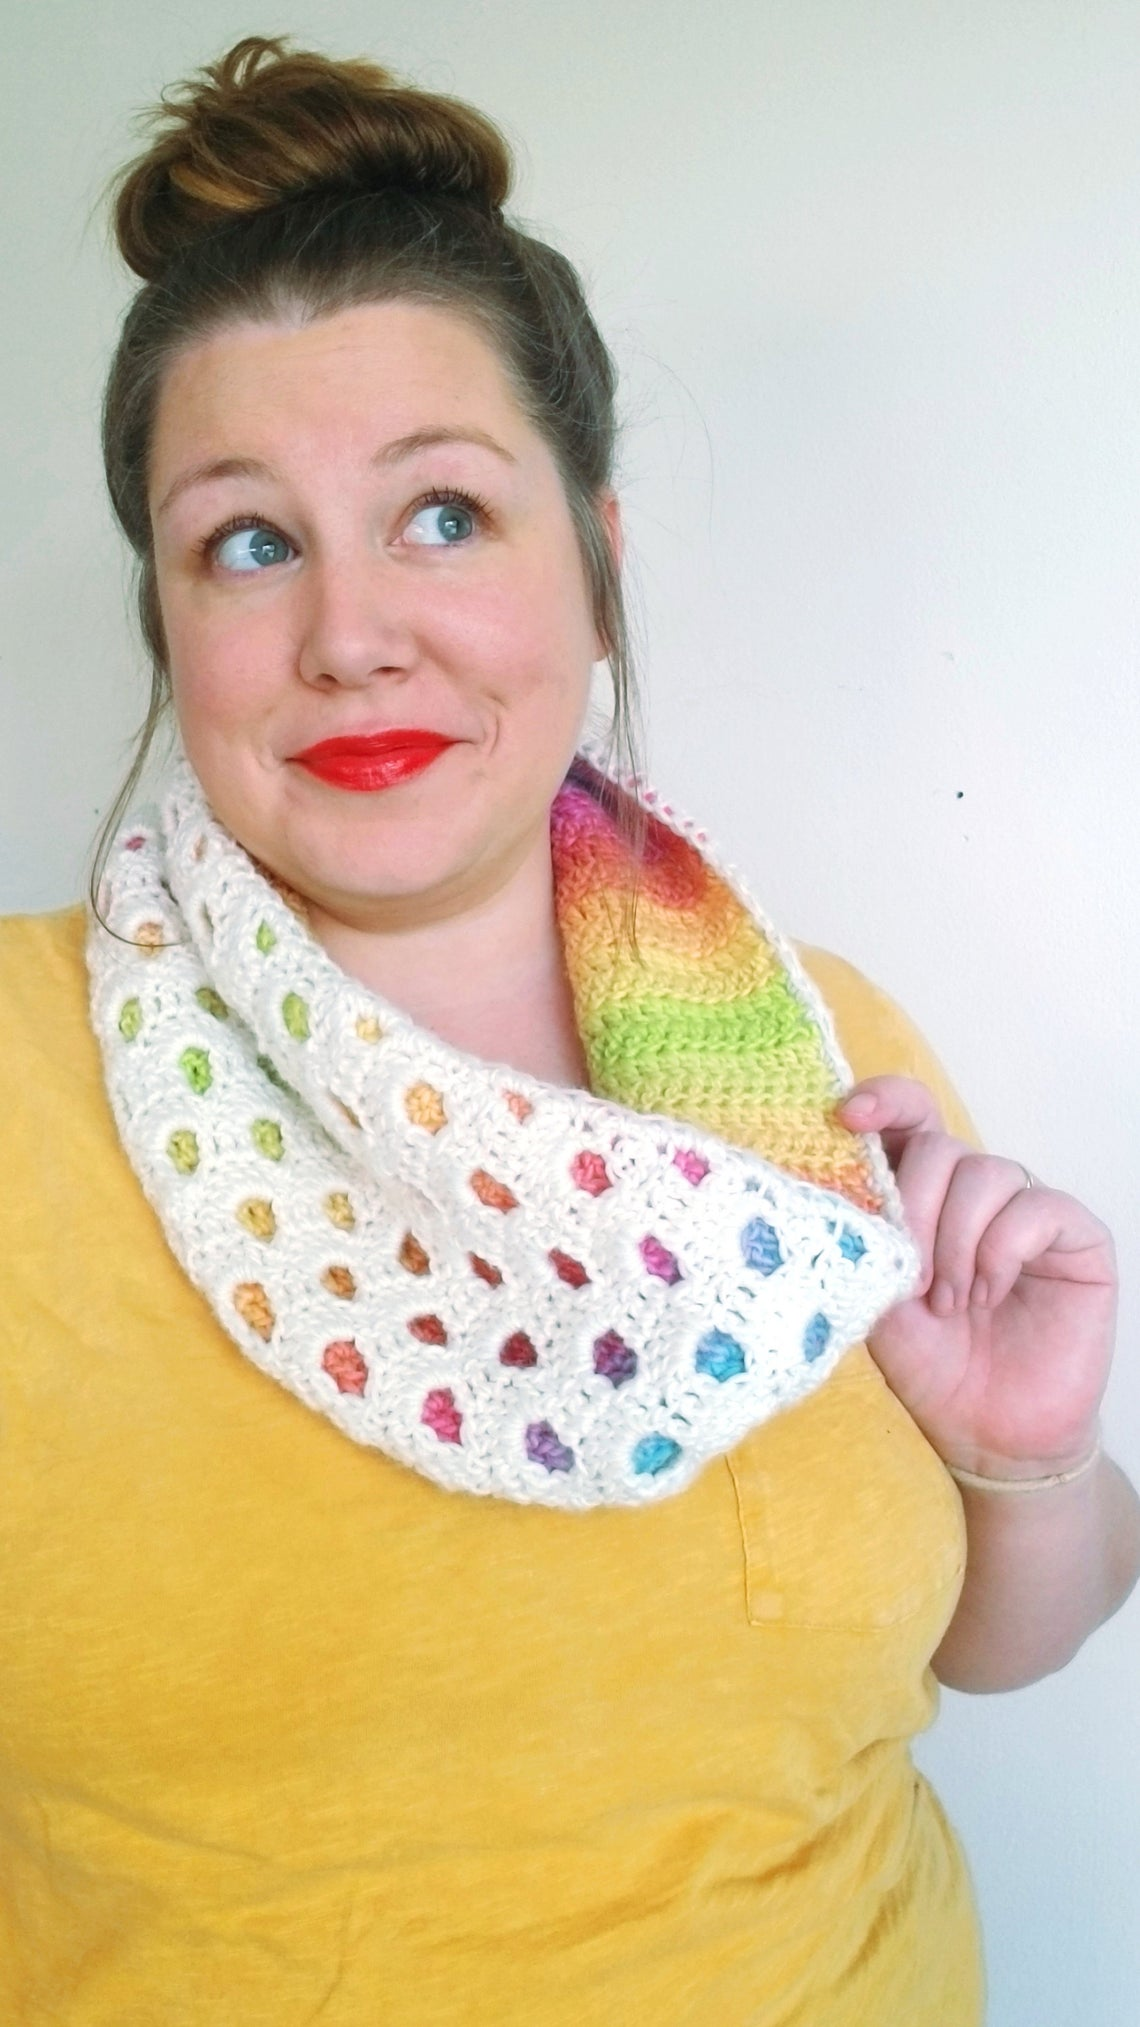 Crochet a Colorful Peek-a-Boo Cowl ... Very Fun and Unique!